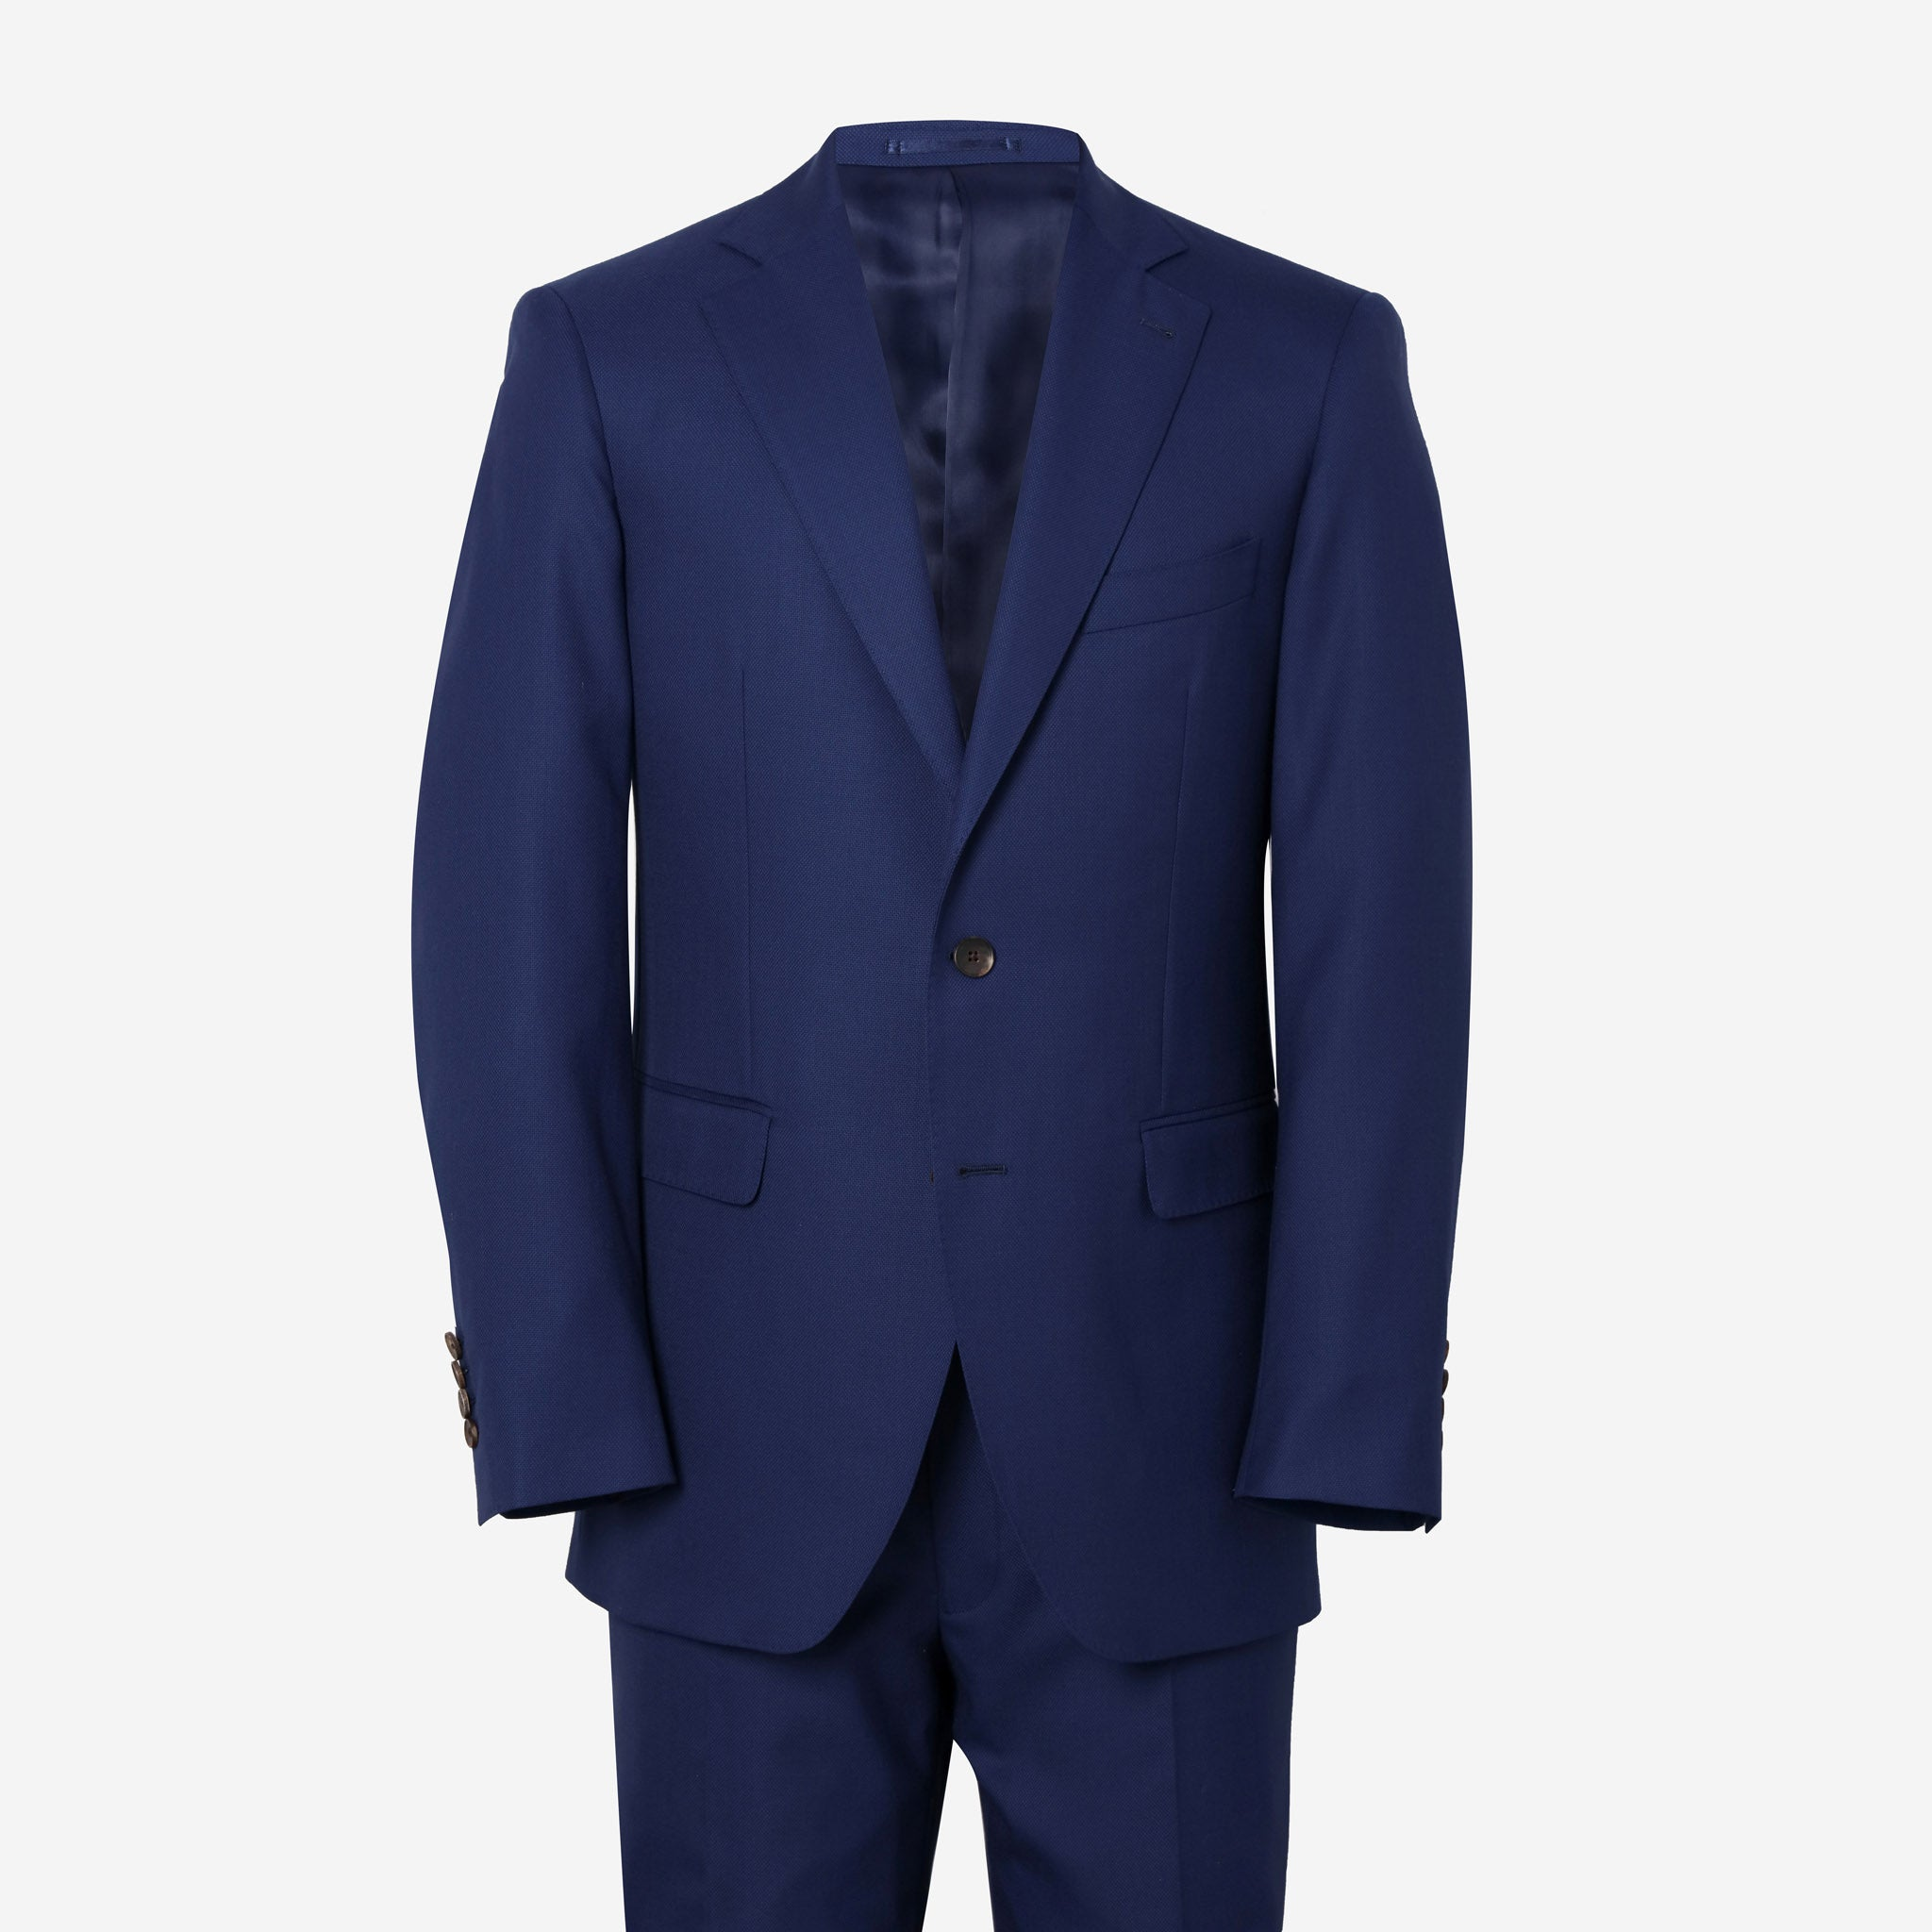 Essentials Luxe Suiting in British Blue Hopsack